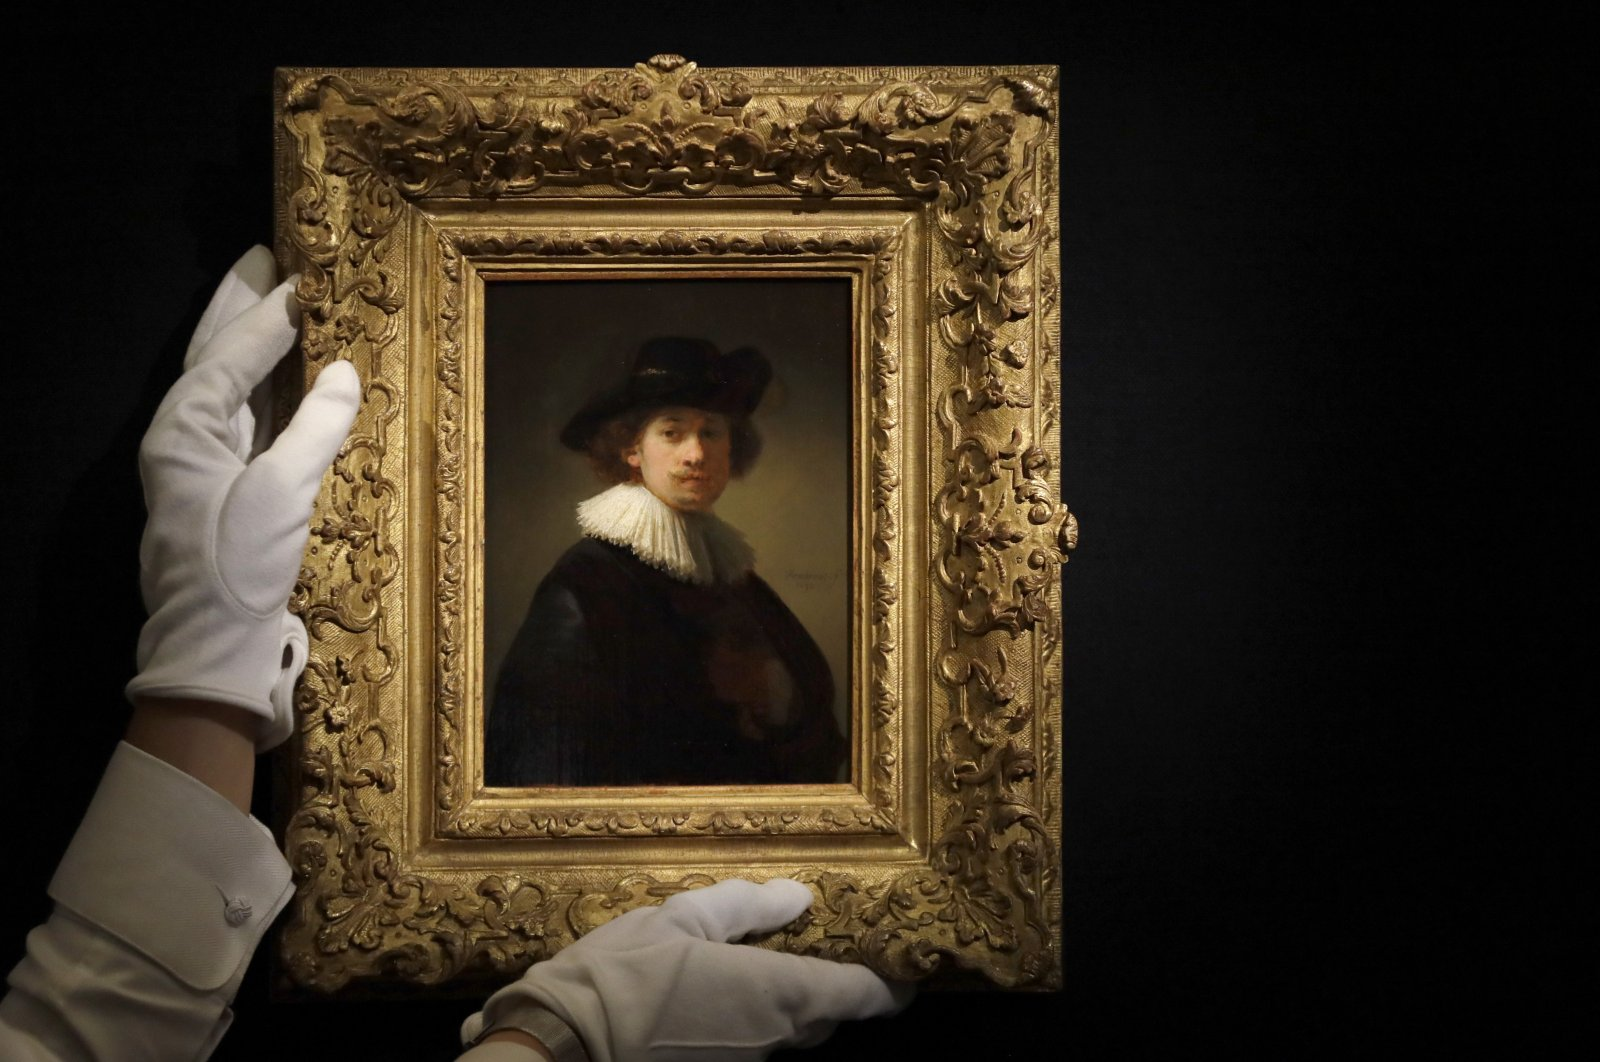 """A Sotheby's employee adjusts a painting by Rembrandt Van Rijn called """"Self-portrait, wearing a ruff and black hat"""" at Sotheby's auction rooms in London, Britain, July 23, 2020. (AP Photo)"""